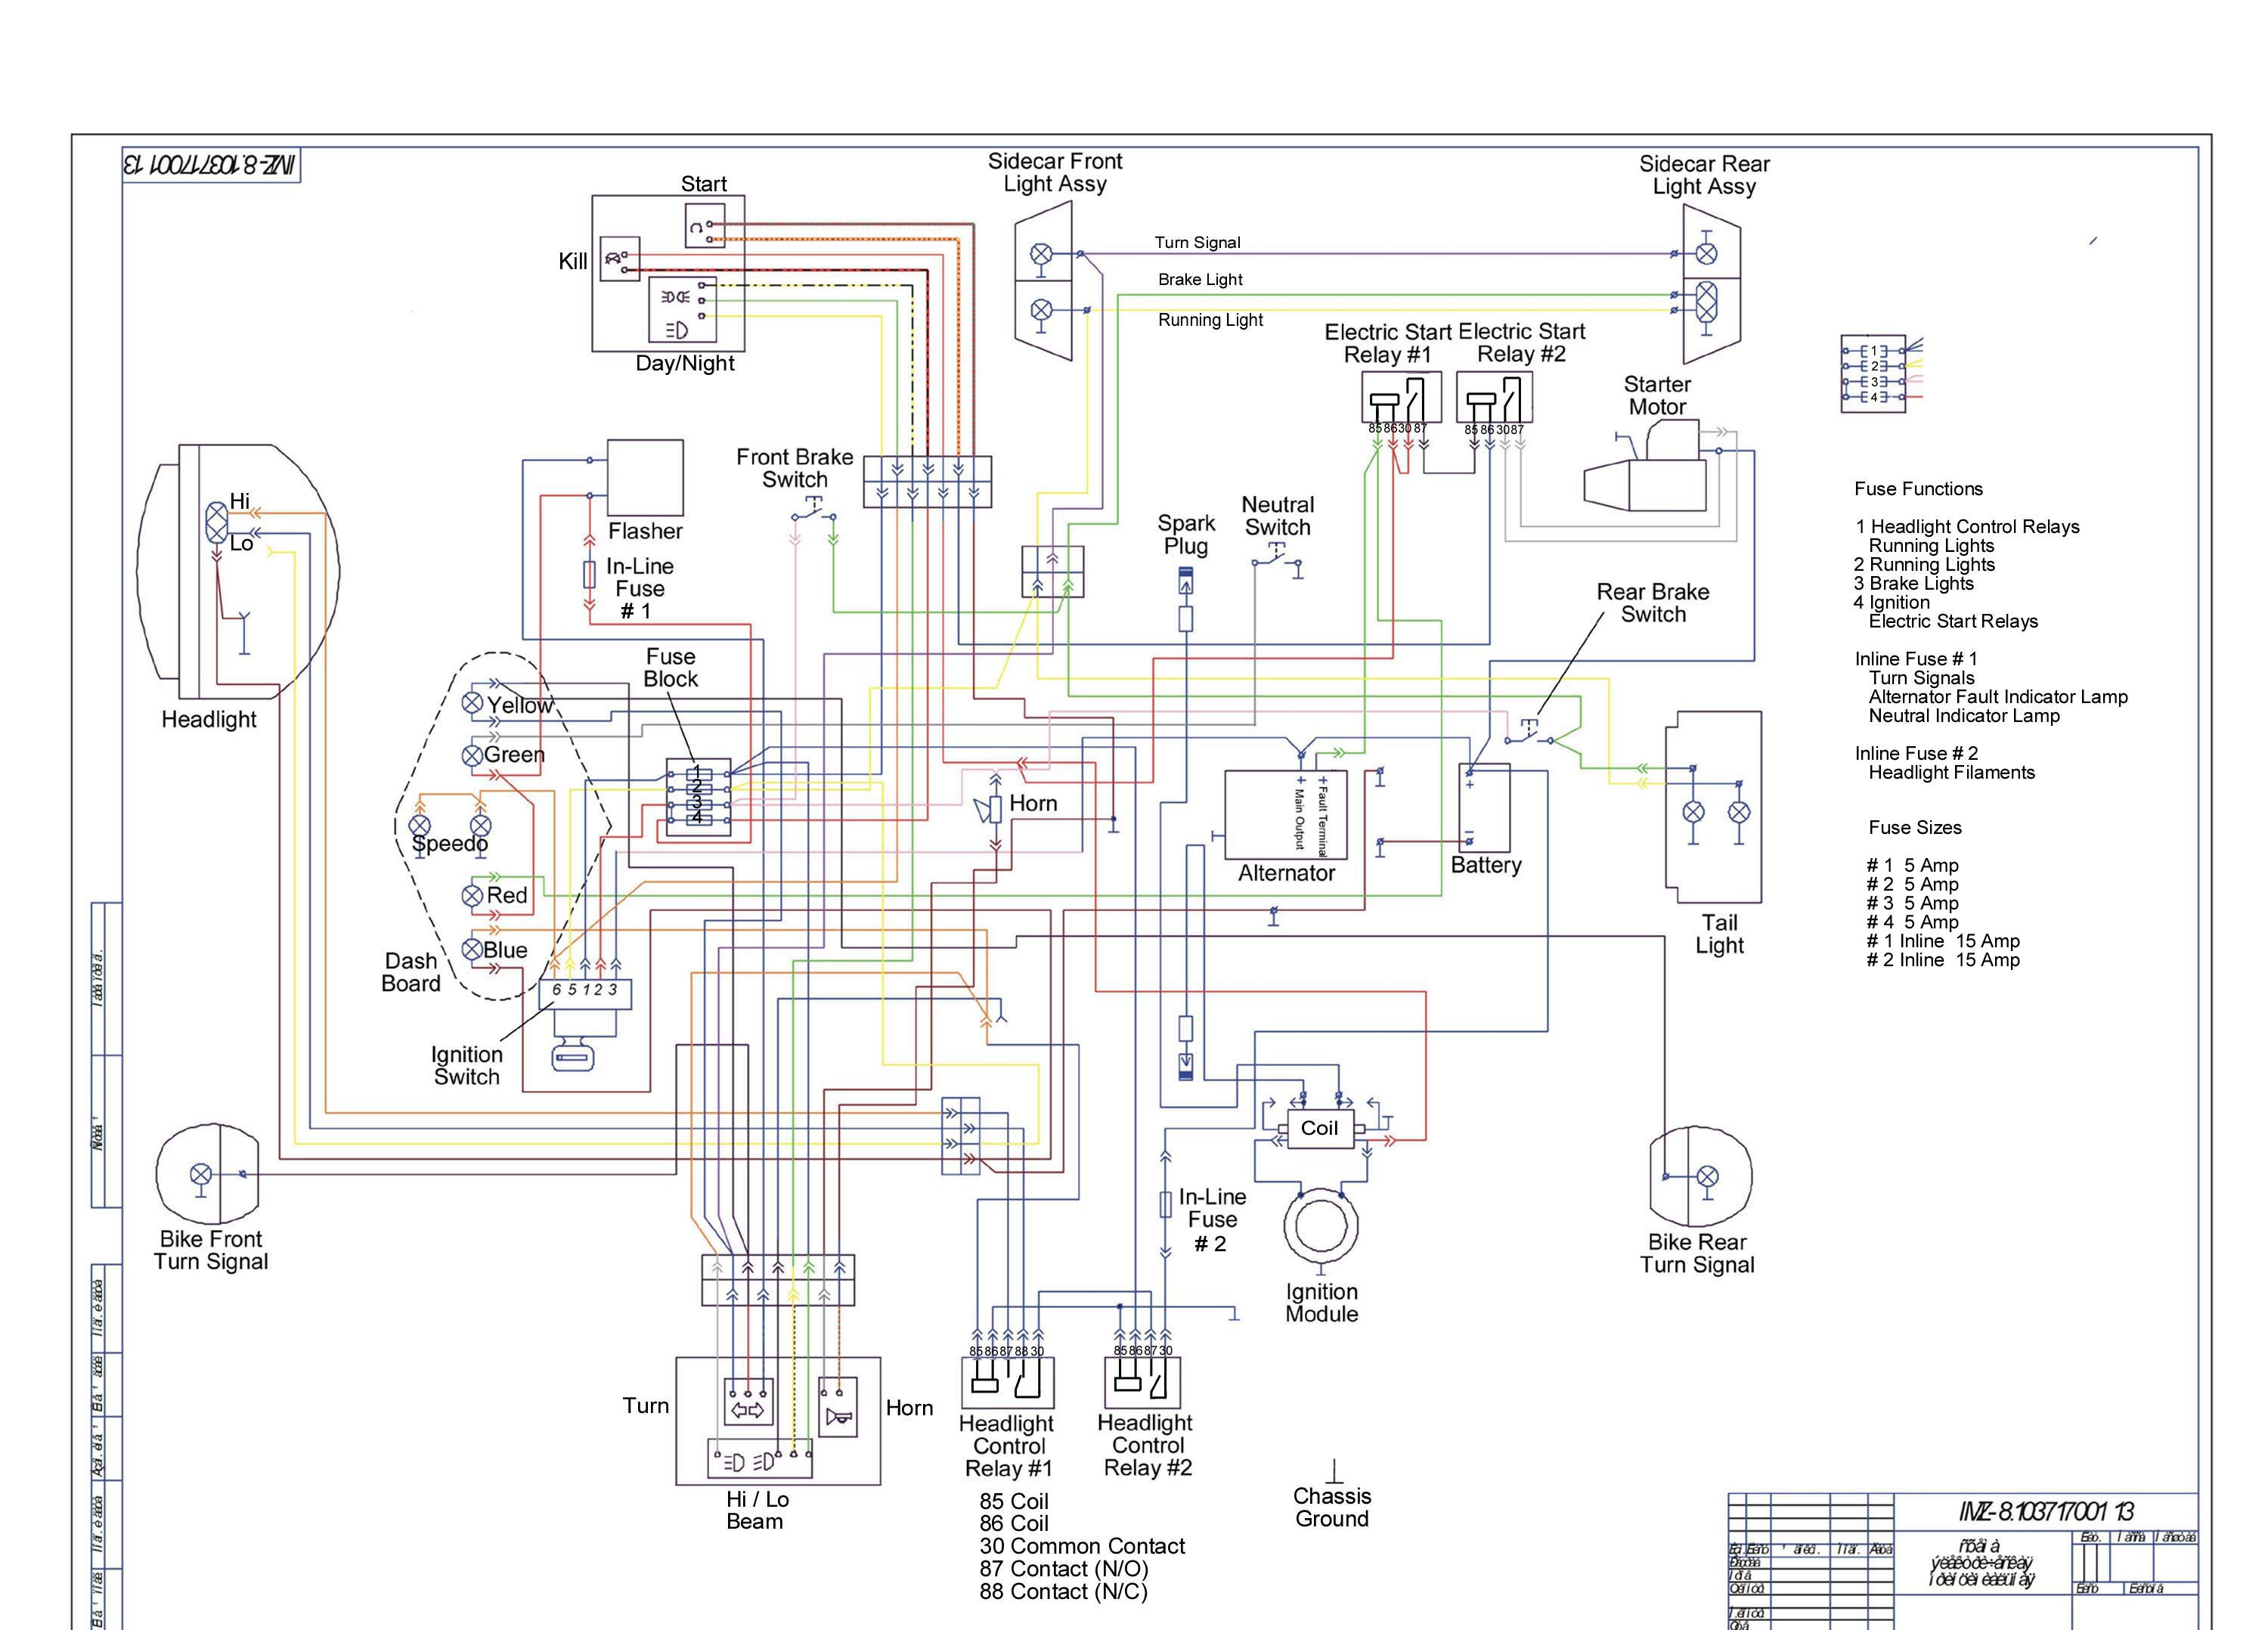 750 Wiring Schematic electrical drawing p o kuttappan the wiring diagram readingrat net moto mirror wiring schematic at readyjetset.co